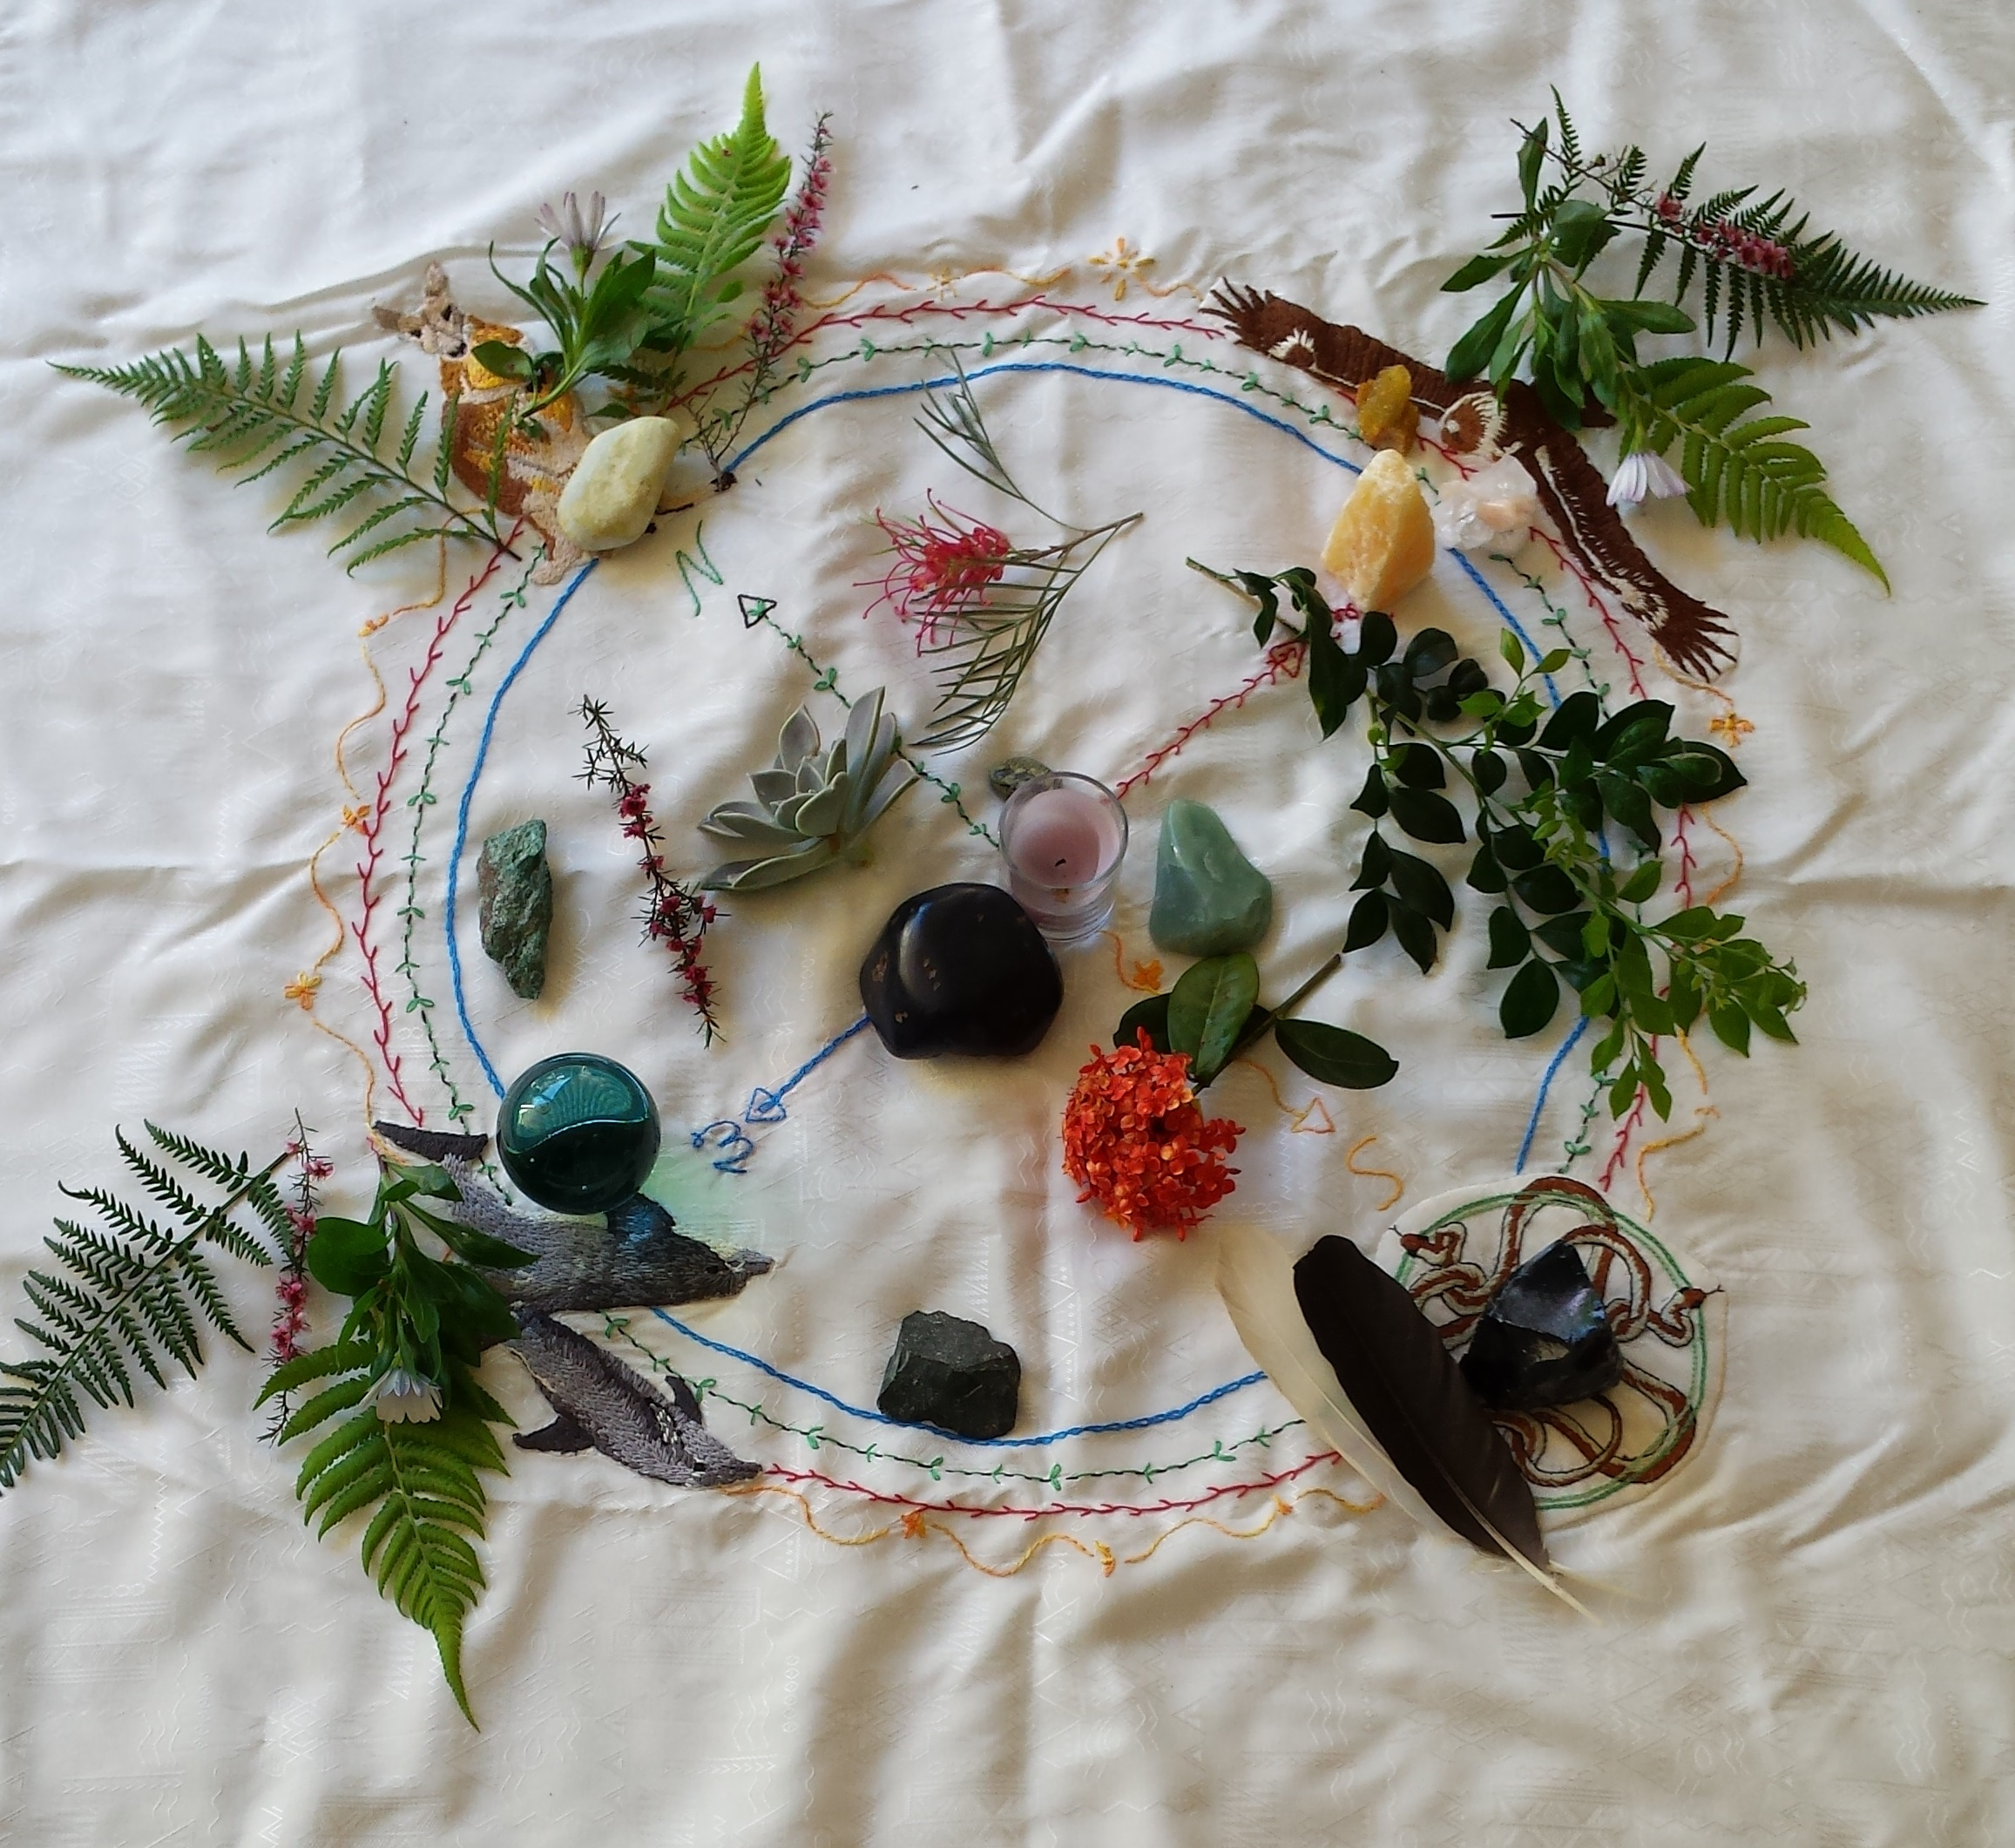 Sacred Circle cloth with plants